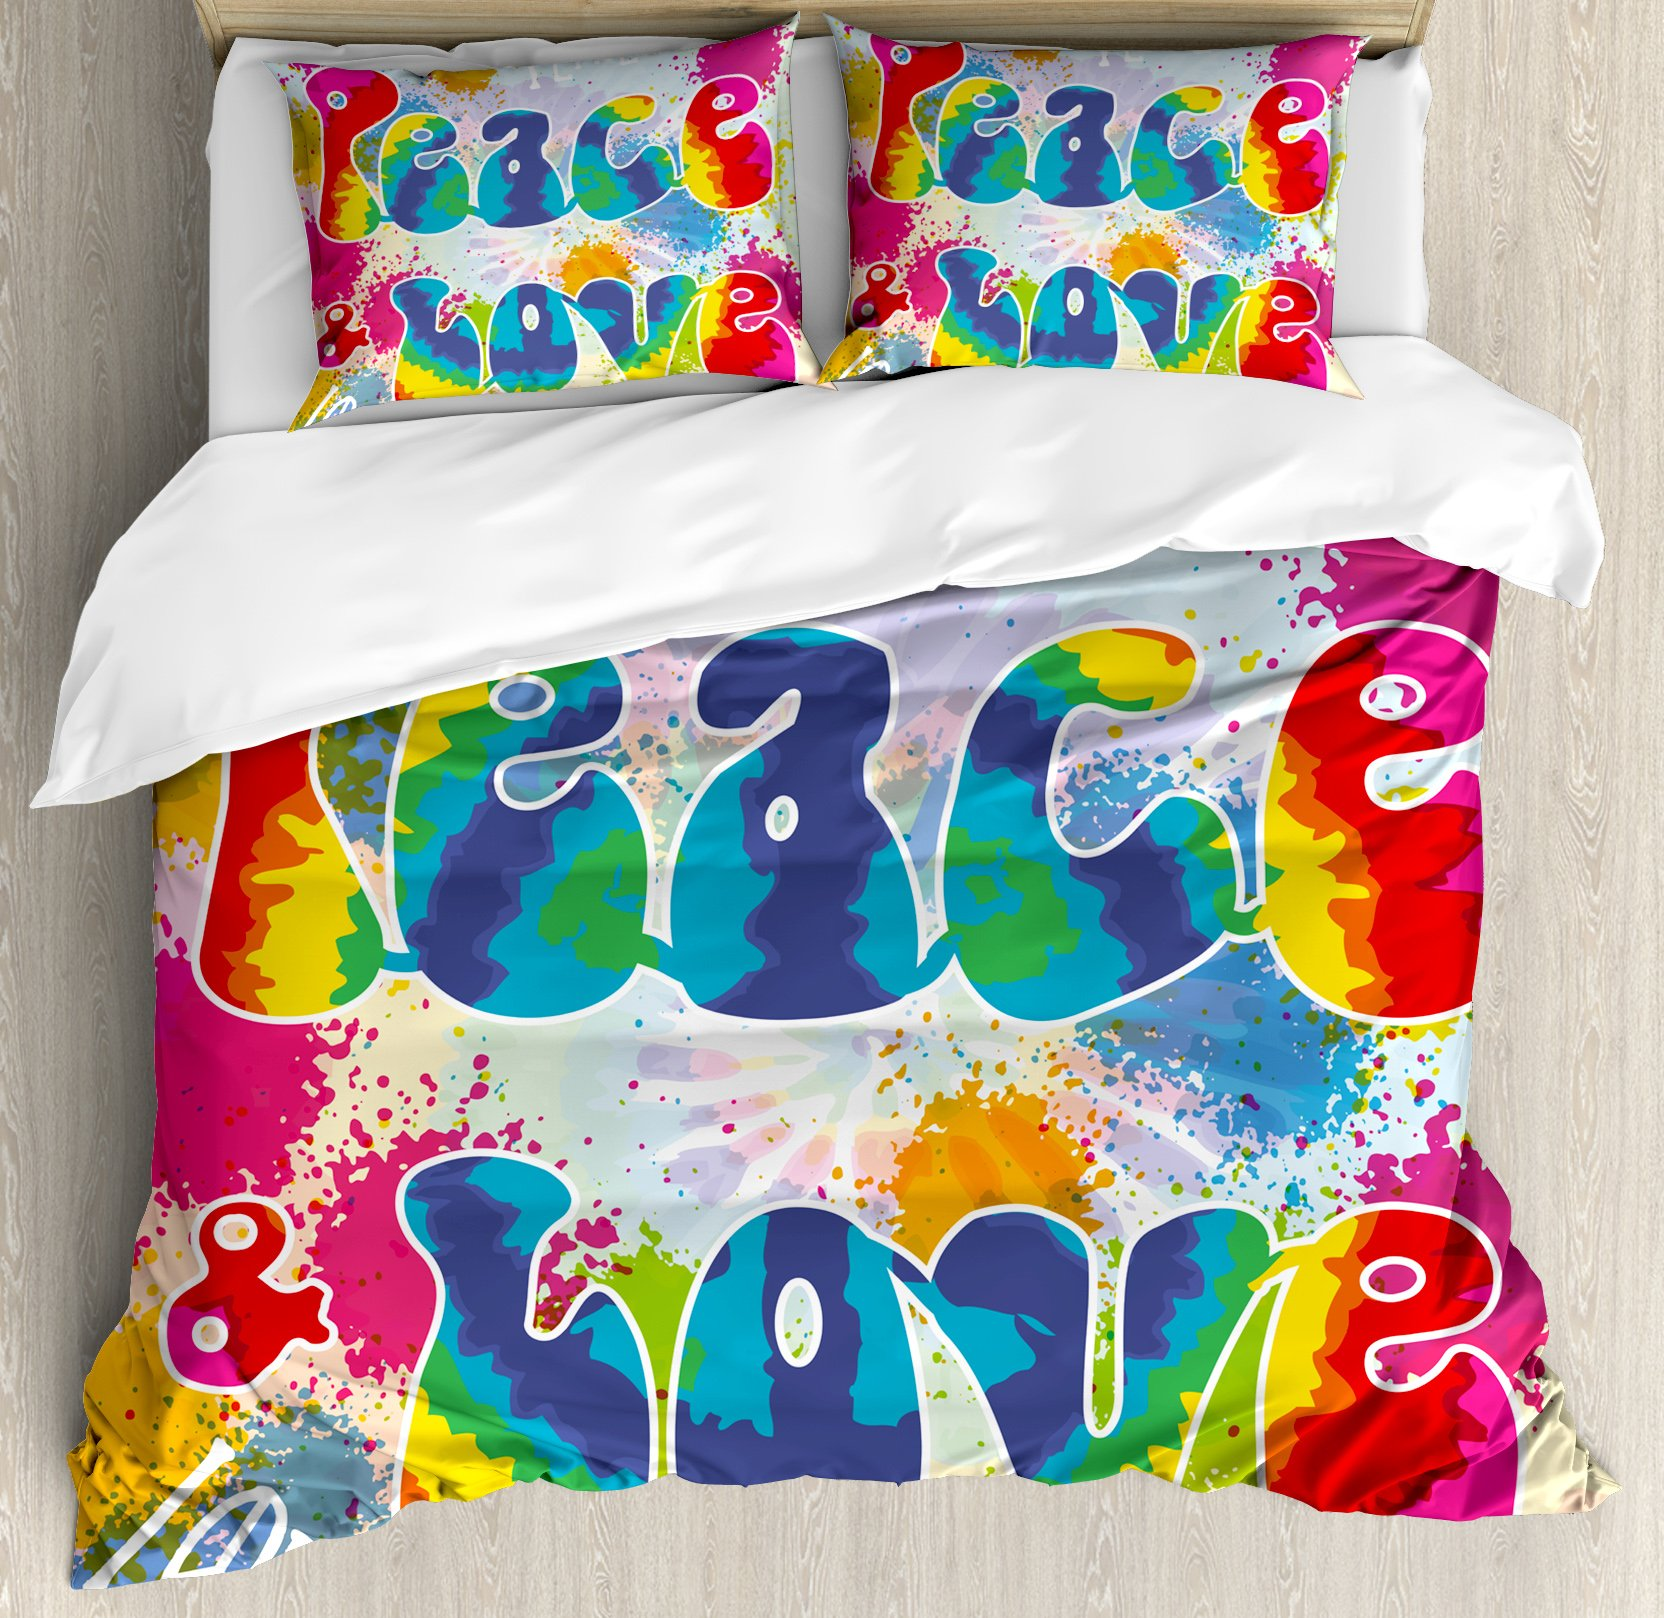 70s Party Decorations Duvet Cover Set King Size by Ambesonne, Peace and Love Tie Dye Funky Color Splashes Rainbow Abstract Artistic, Decorative 3 Piece Bedding Set with 2 Pillow Shams, Multicolor